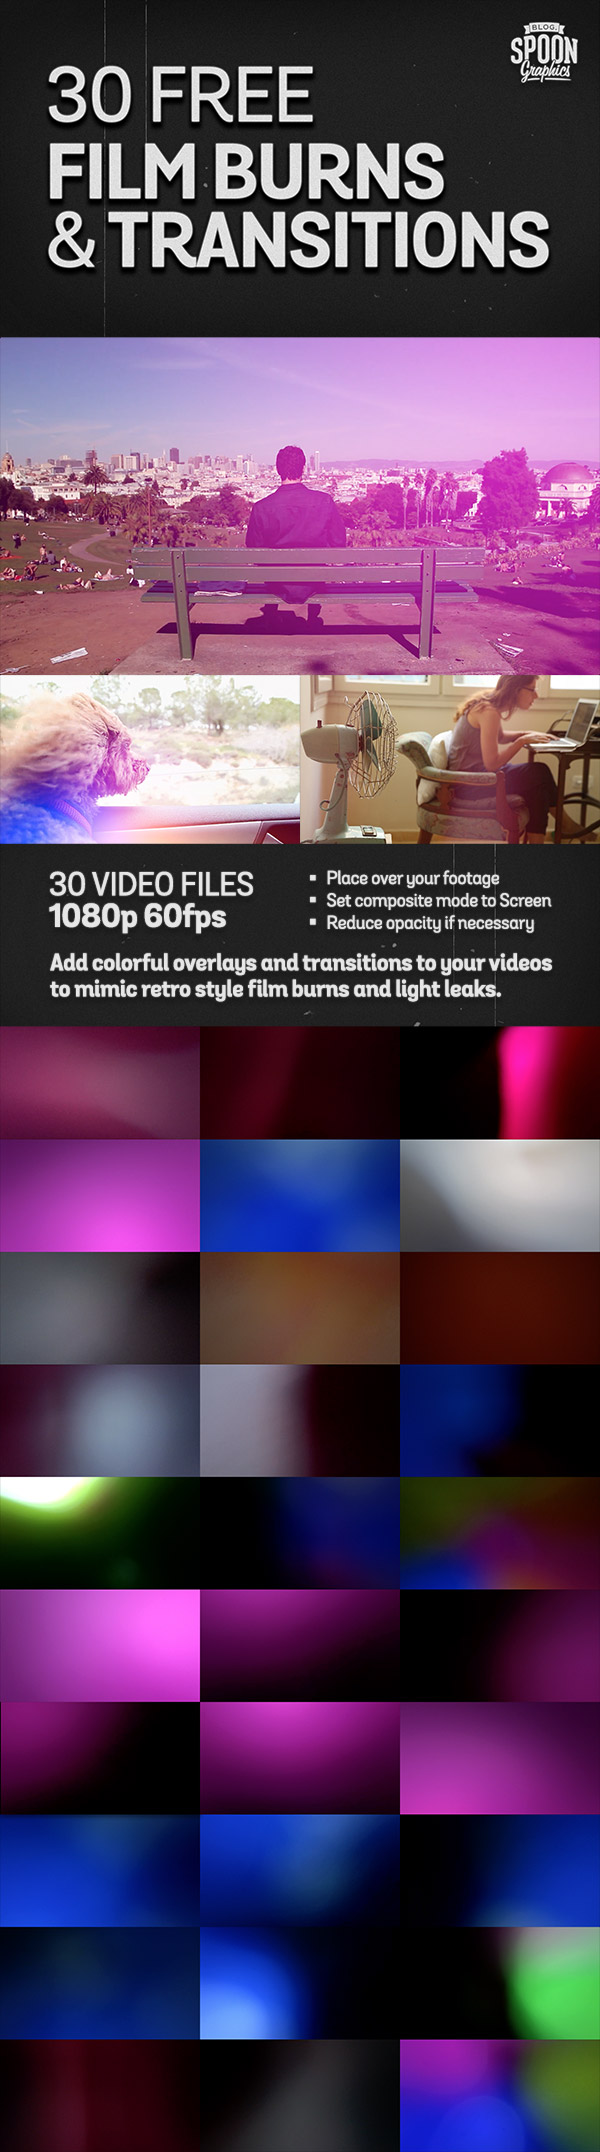 30 Free Film Burns and Transitions